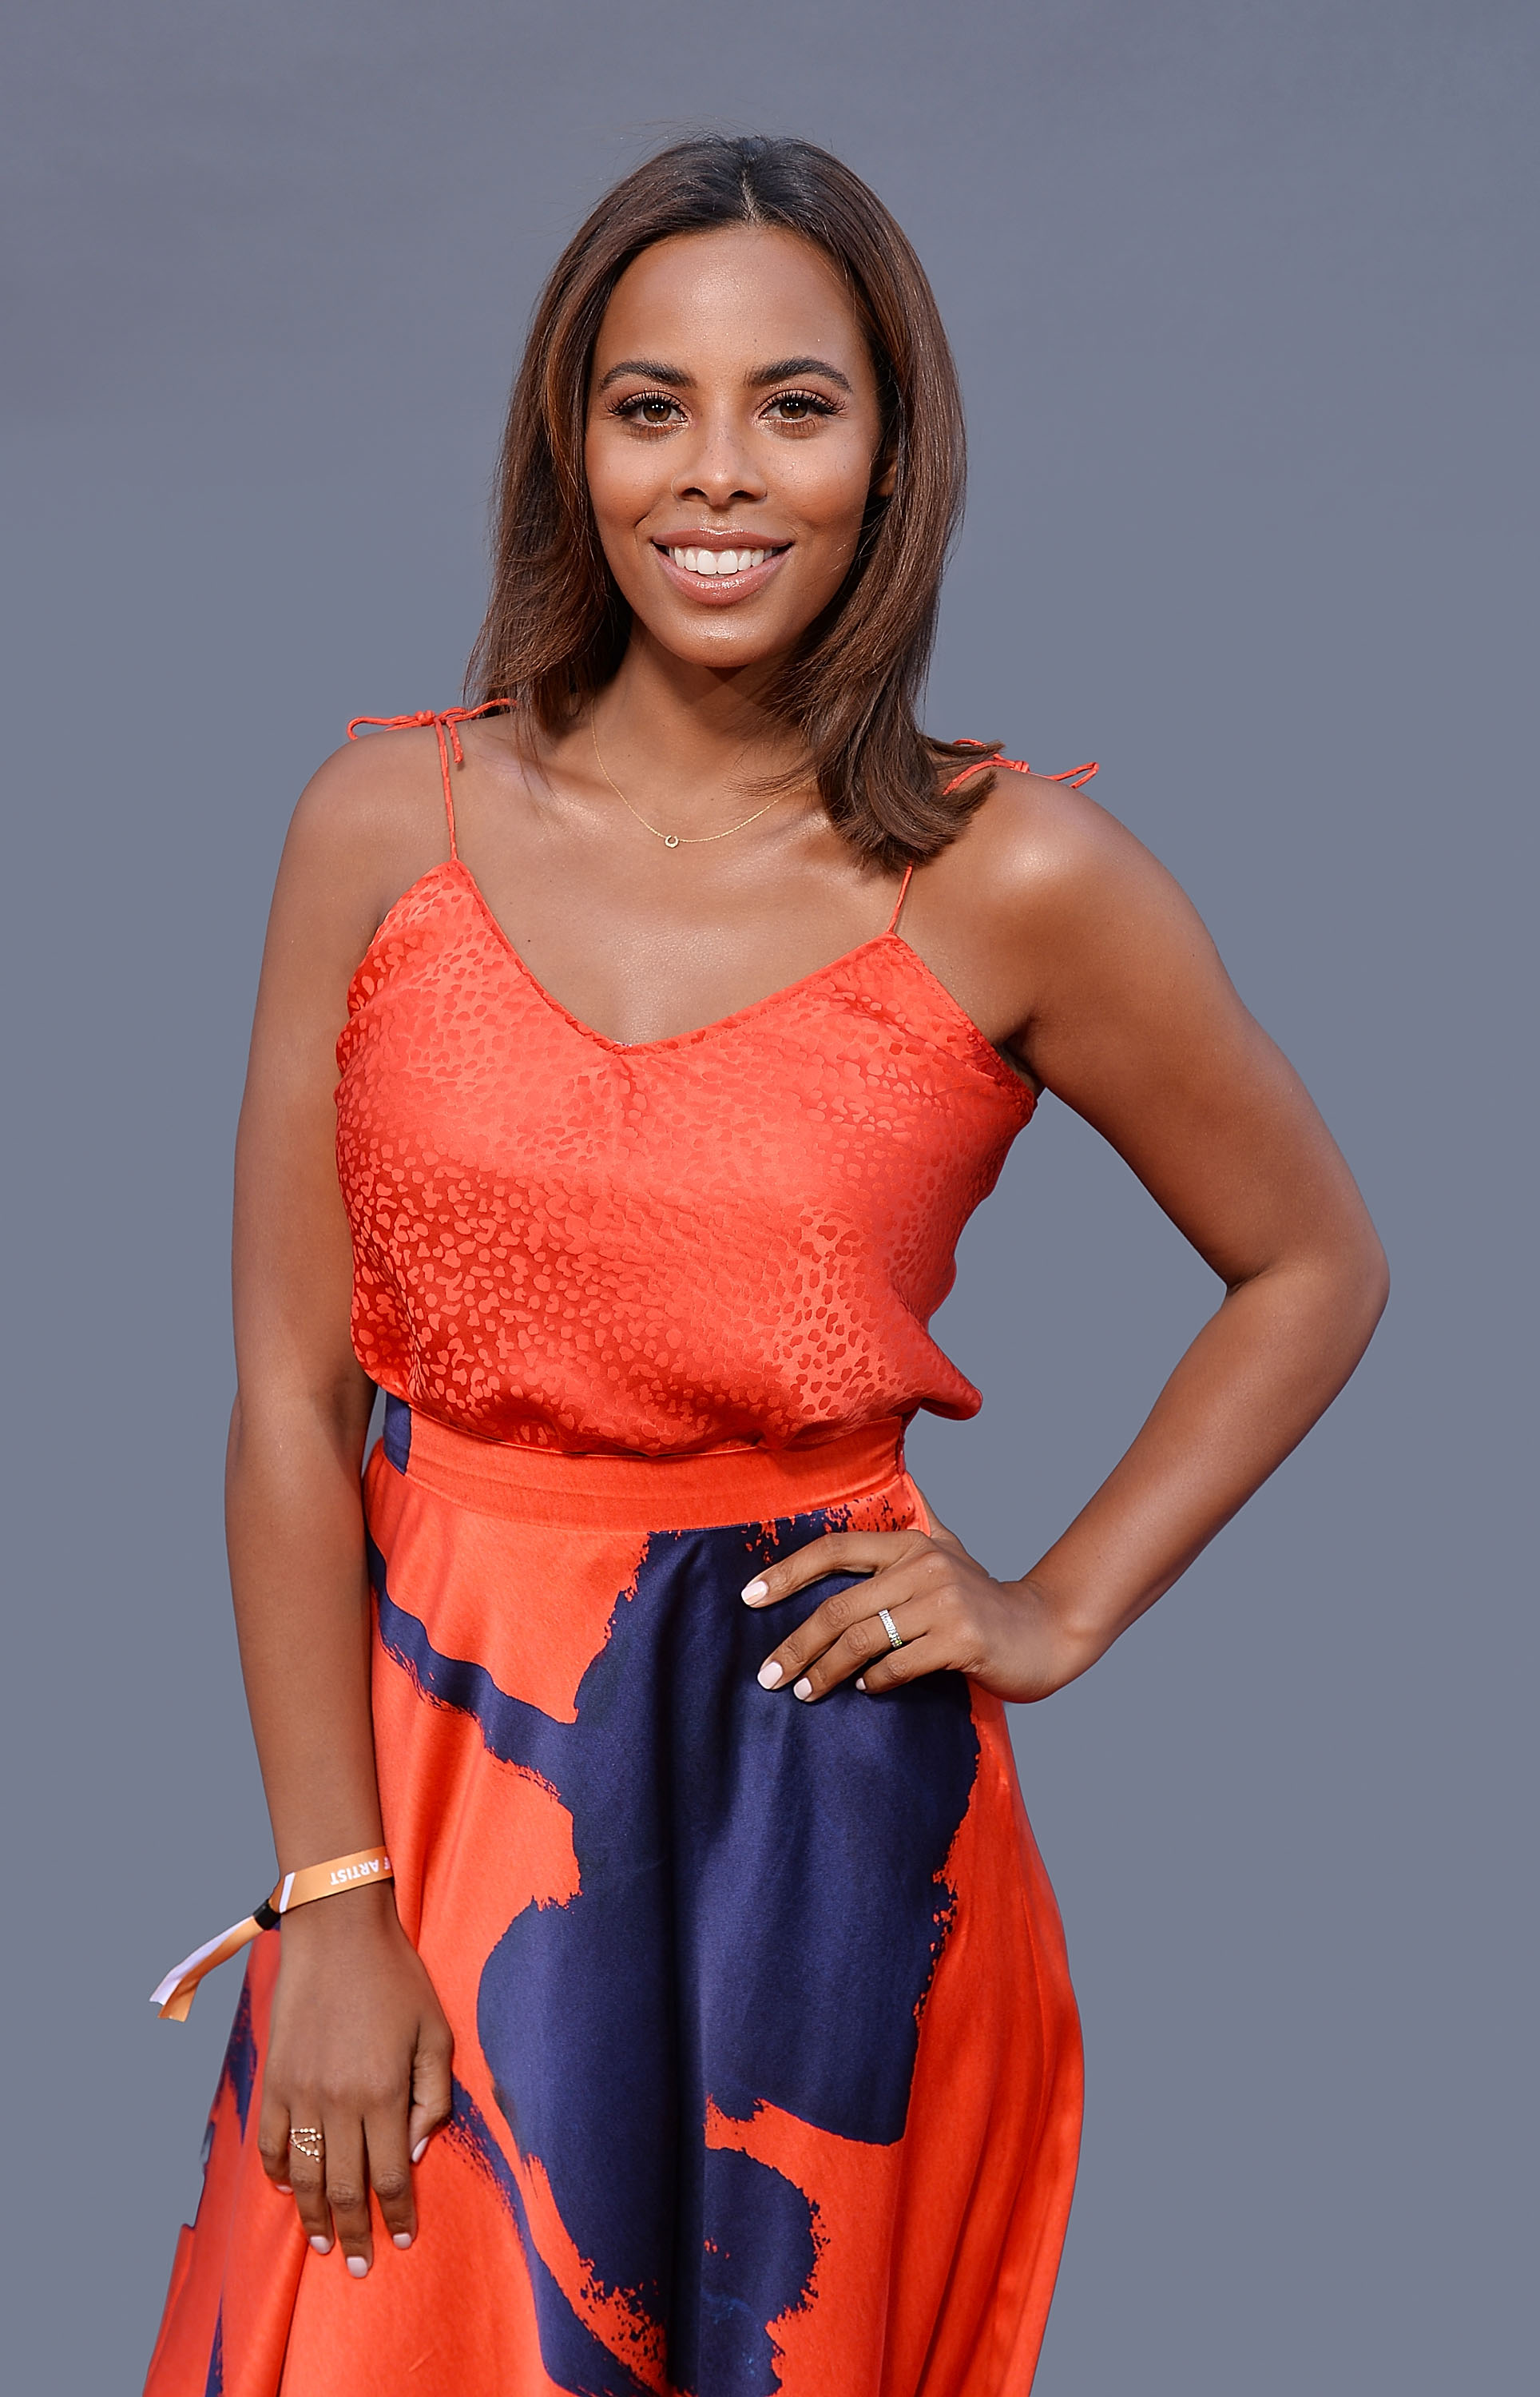 LONDON, ENGLAND - JULY 12: (EDITORS NOTE: This Picture has been digitally retouched.) Rochelle Humes during F1 Live London at Trafalgar Square on July 12, 2017 in London, England. F1 Live London, the first time in Formula 1 history that all 10 teams come together outside of a race weekend to put on a show for the public in the heart of London. (Photo by Jeff Spicer/Getty Images for Formula 1)